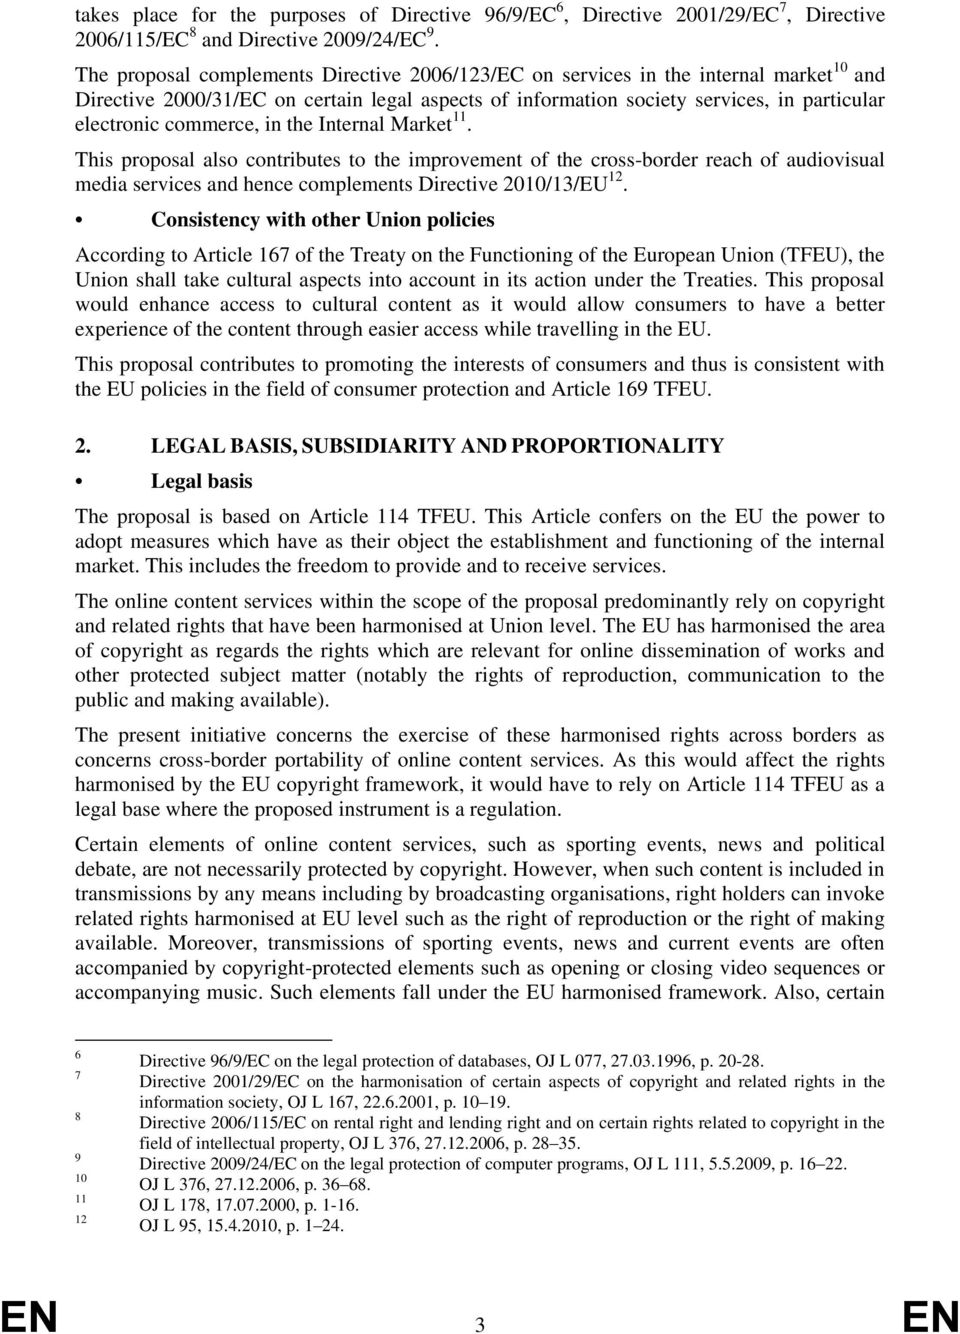 commerce, in the Internal Market 11. This proposal also contributes to the improvement of the cross-border reach of audiovisual media services and hence complements Directive 2010/13/EU 12.